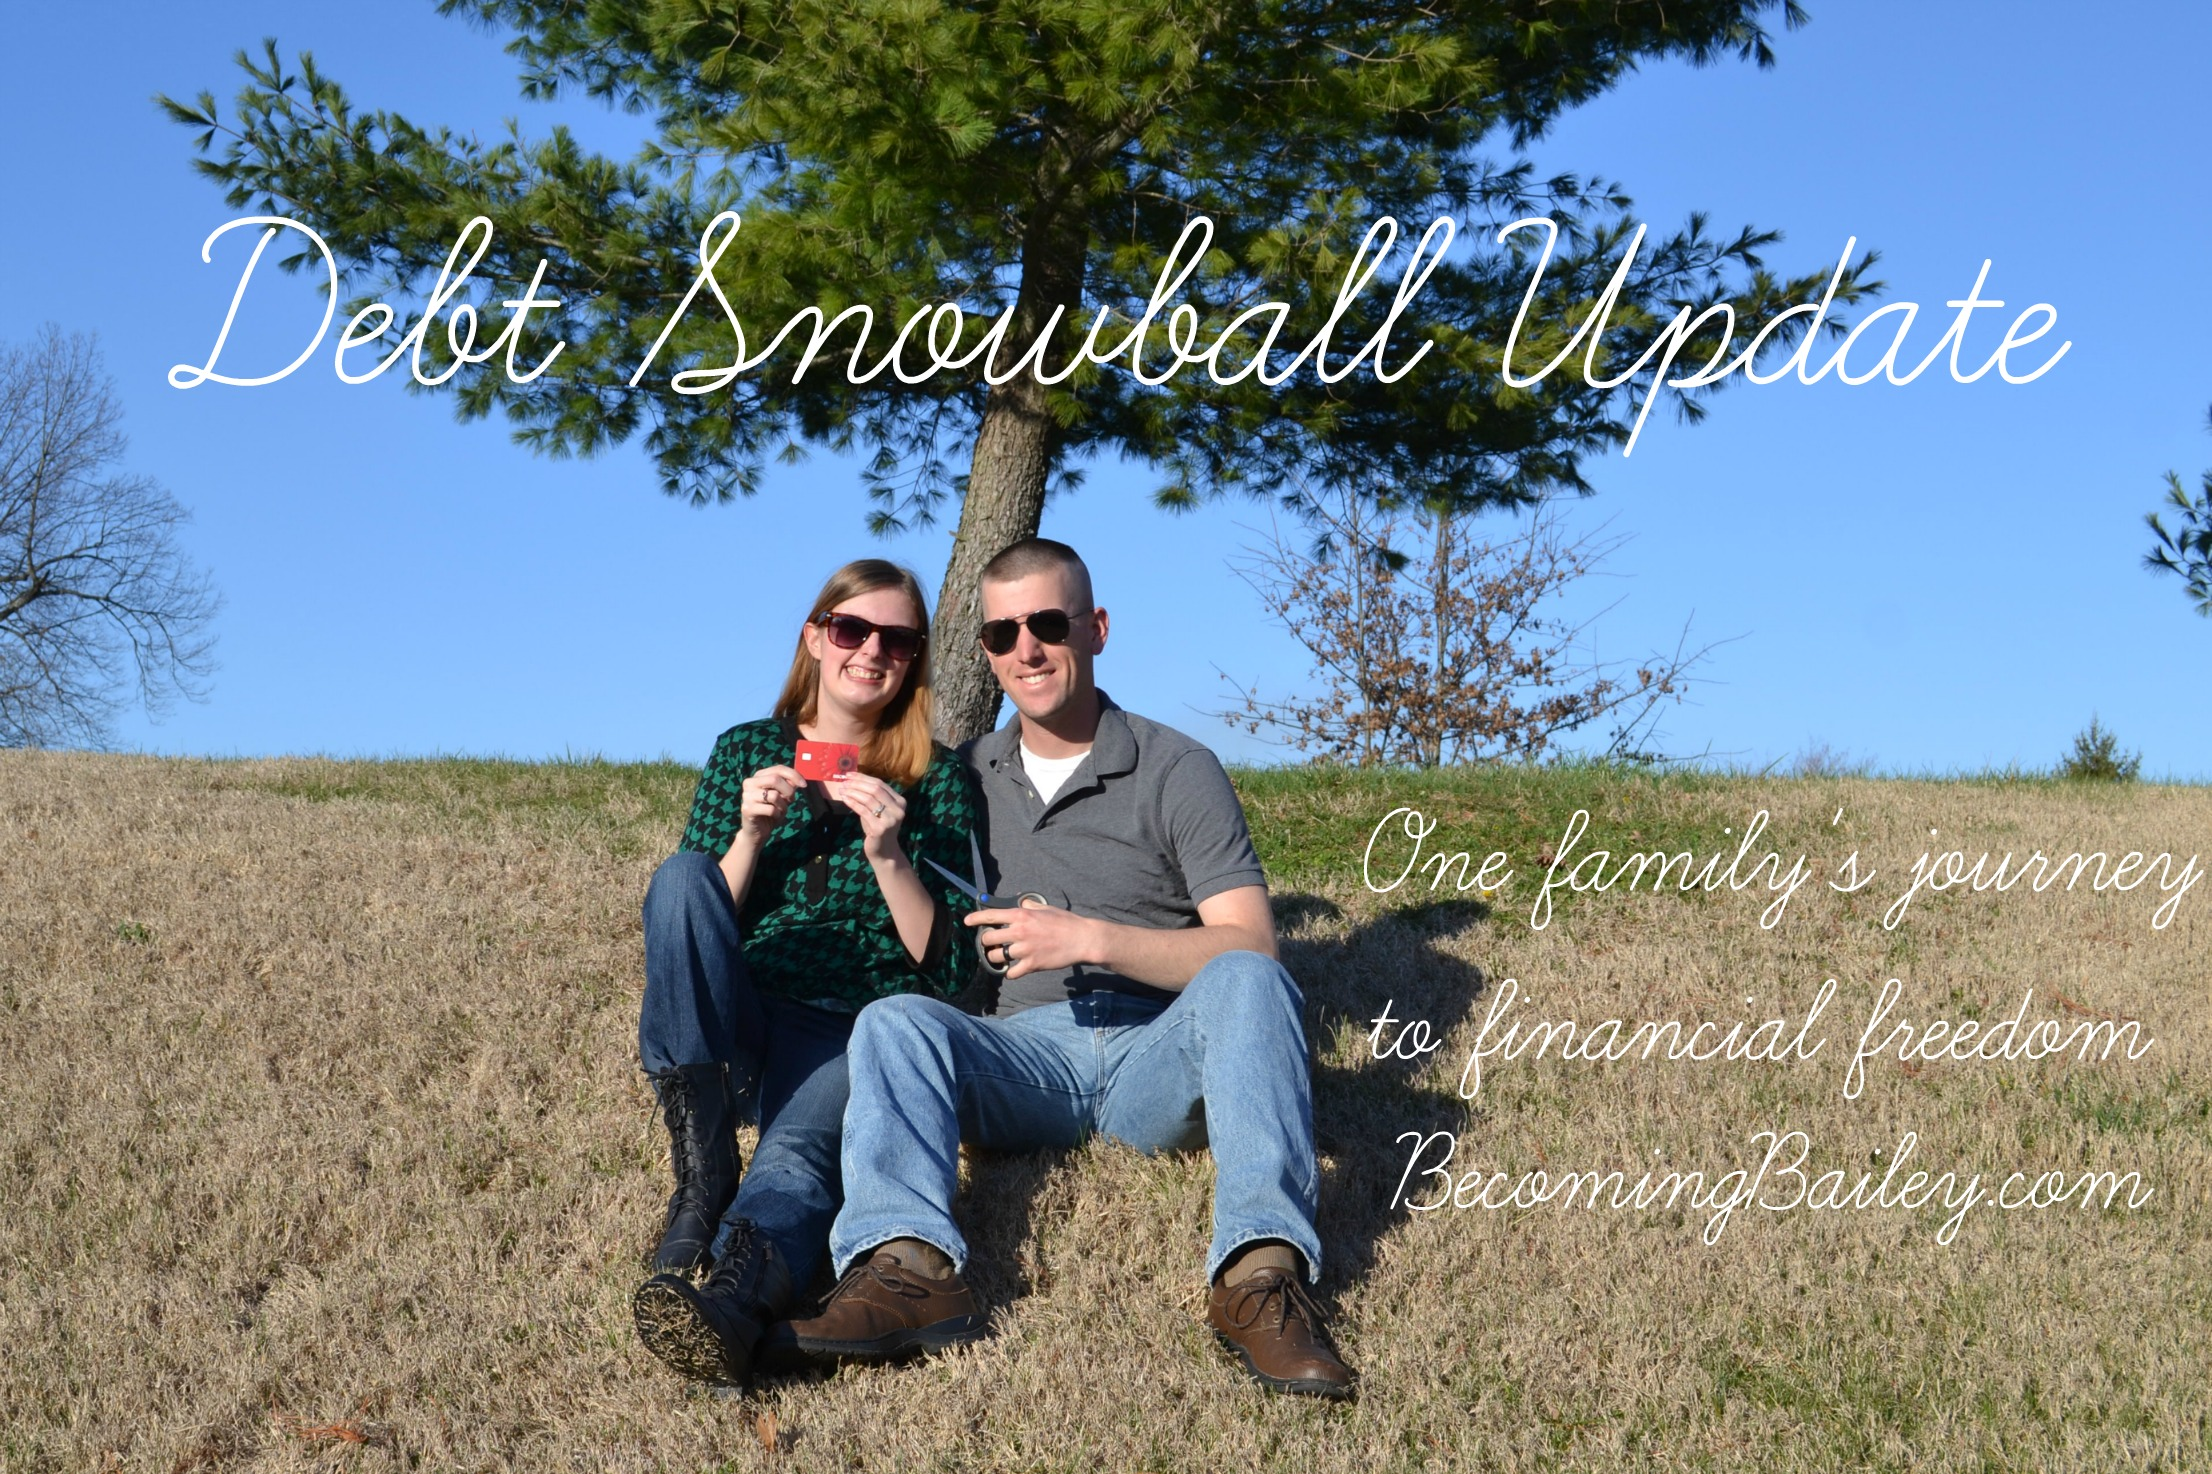 Debt Snowball Update: One Down, Three to Go!